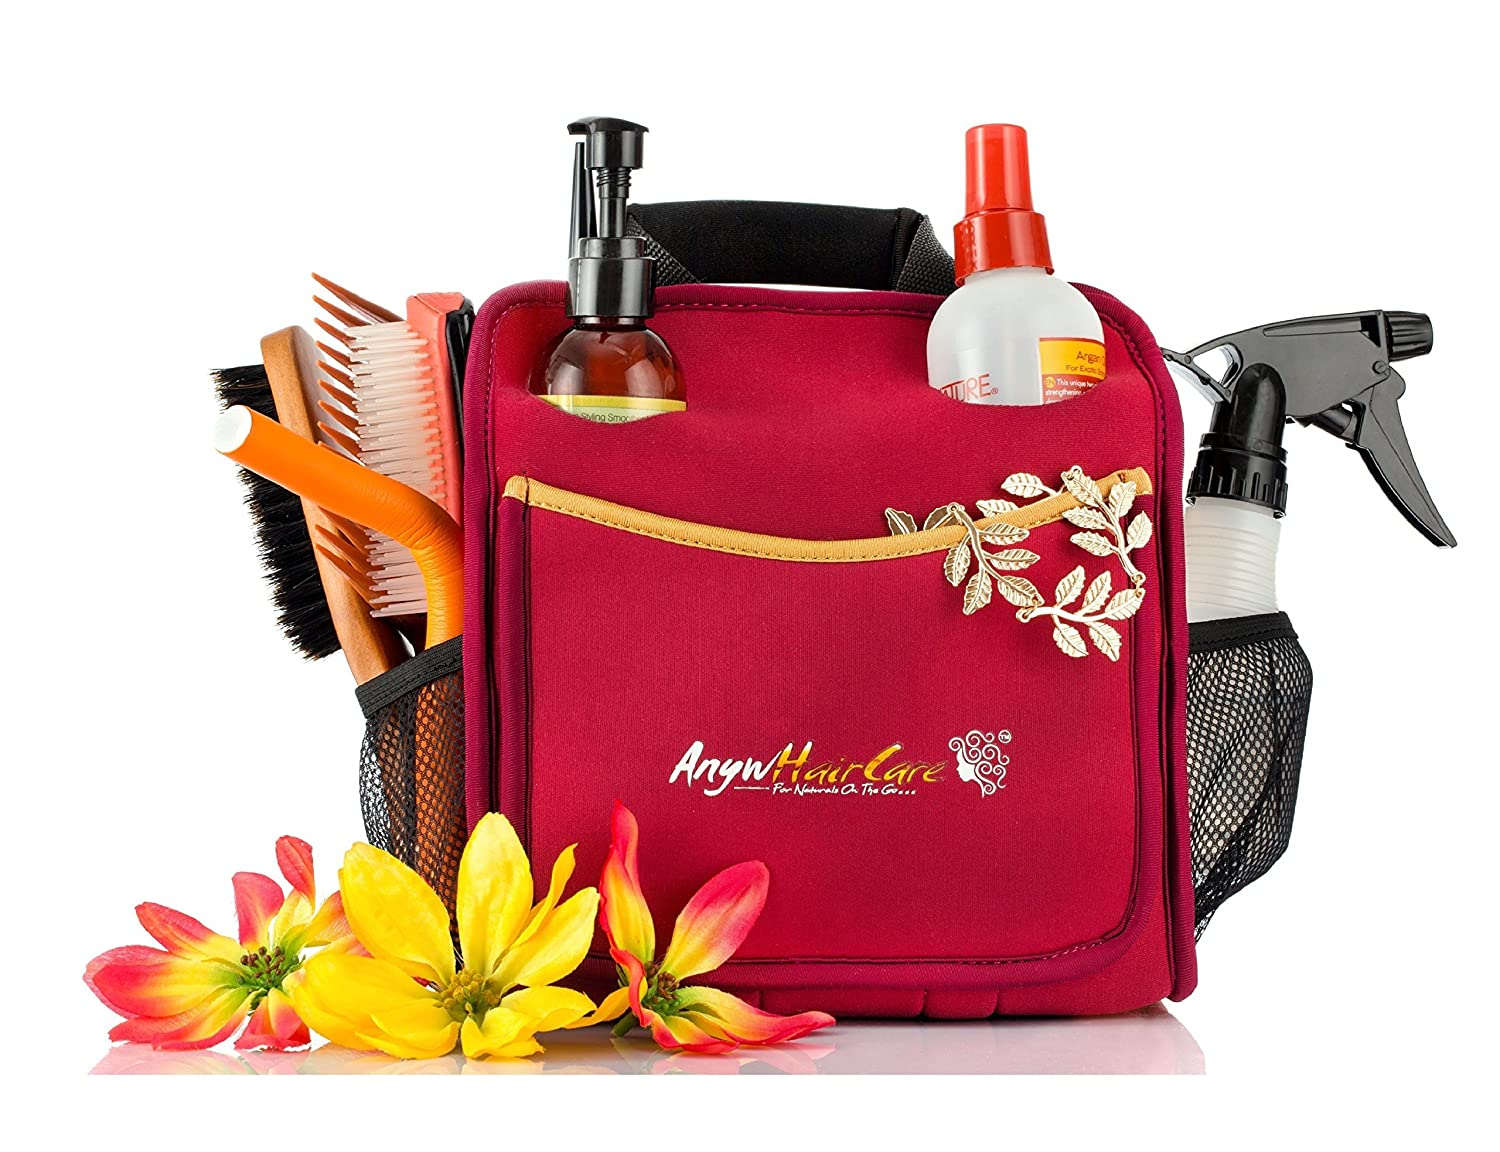 b382d7edb9d Amazon.com  Organizer Bag for Hair Care and Bathroom Accessories   Holder  Tool and Storage Caddy for Dorms, Hair Salon and Accessories  Home   Kitchen